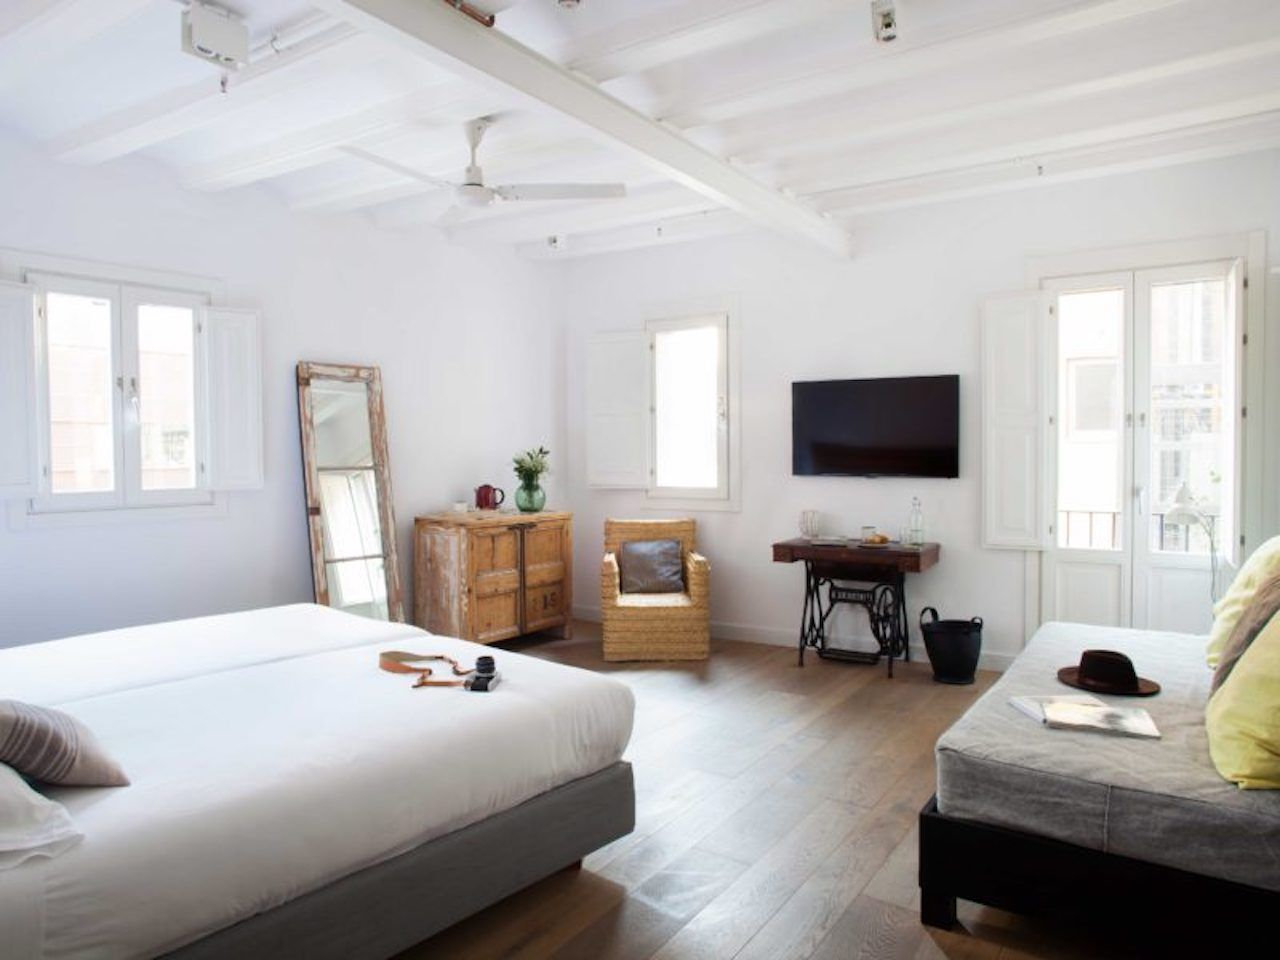 Hostal Grau in Barcelona, Spain